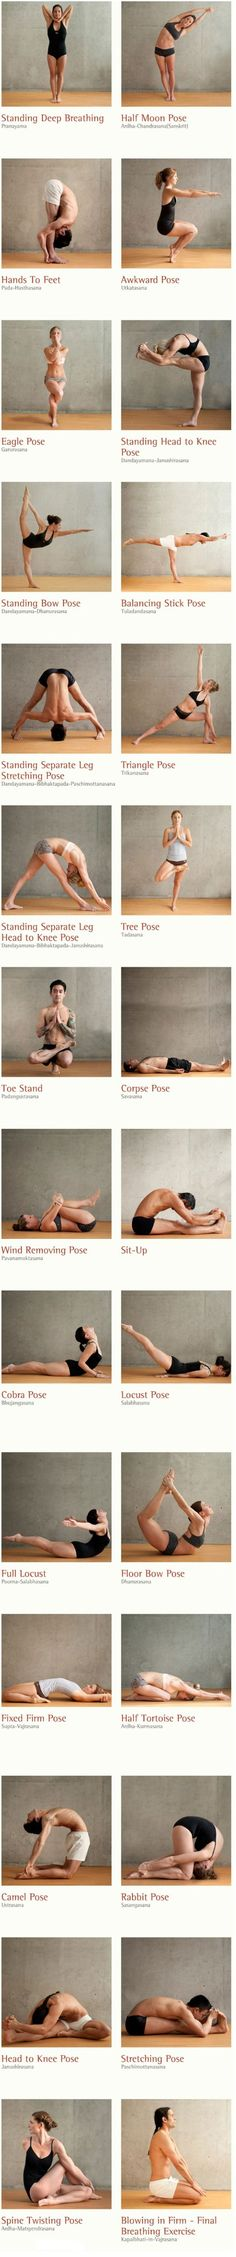 People with rheumatoid arthritis who practice yoga have significant improvements in disease activity